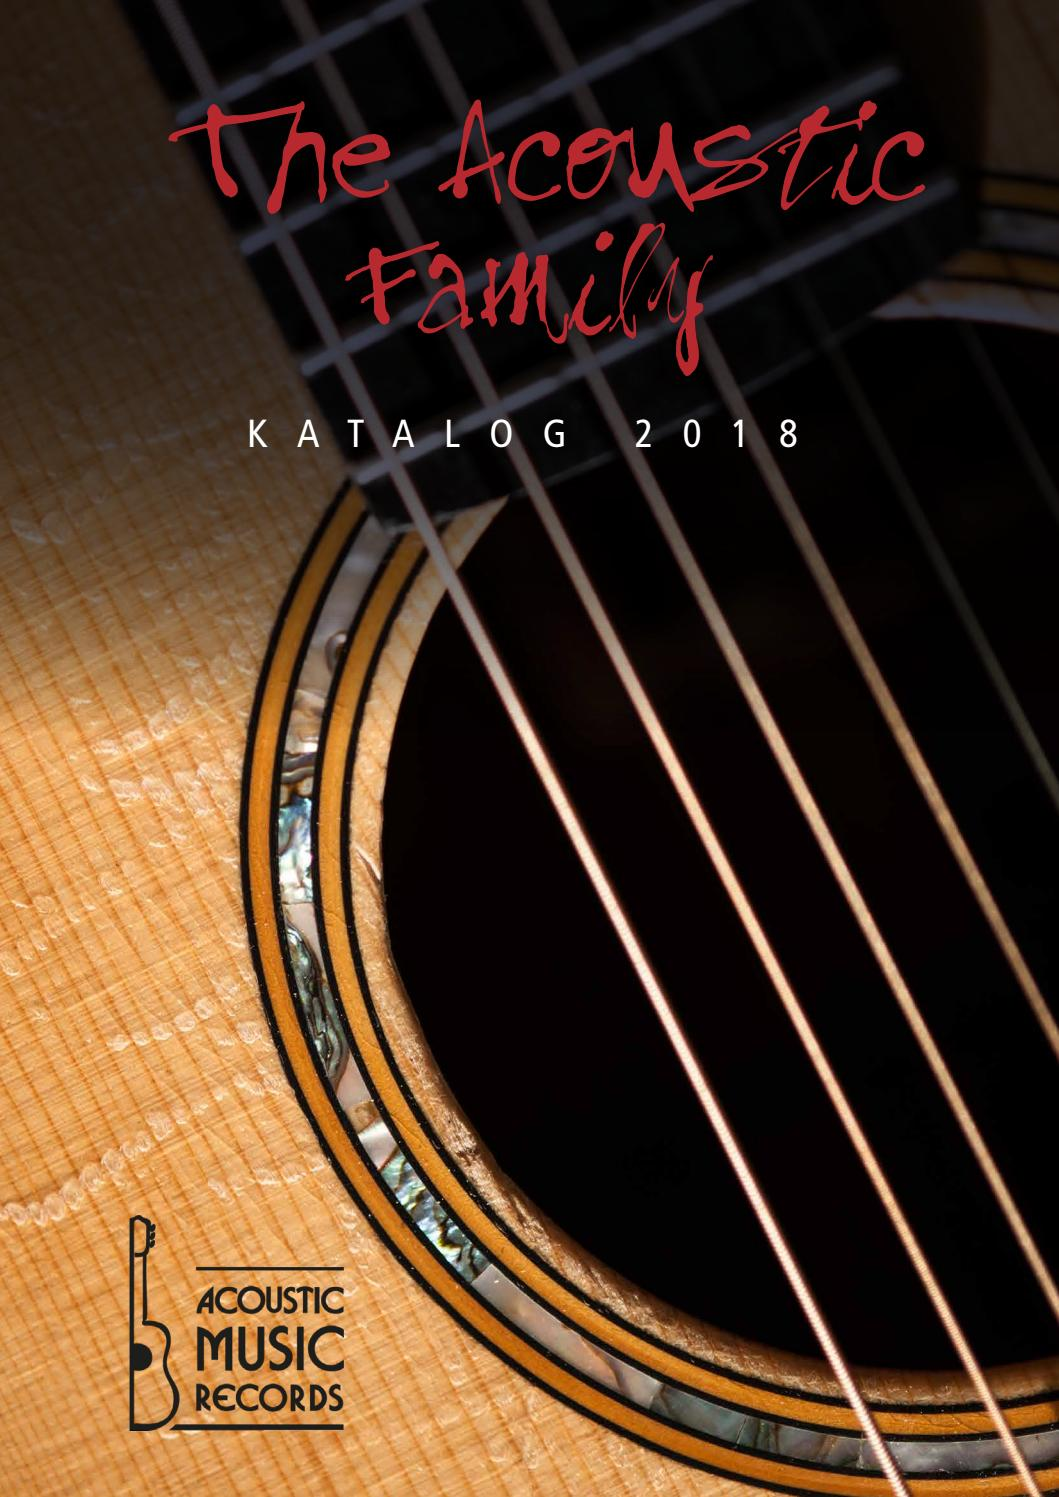 Acoustic Music Gesamtkatalog 2018 by Acoustic Music GmbH & Co. KG ...